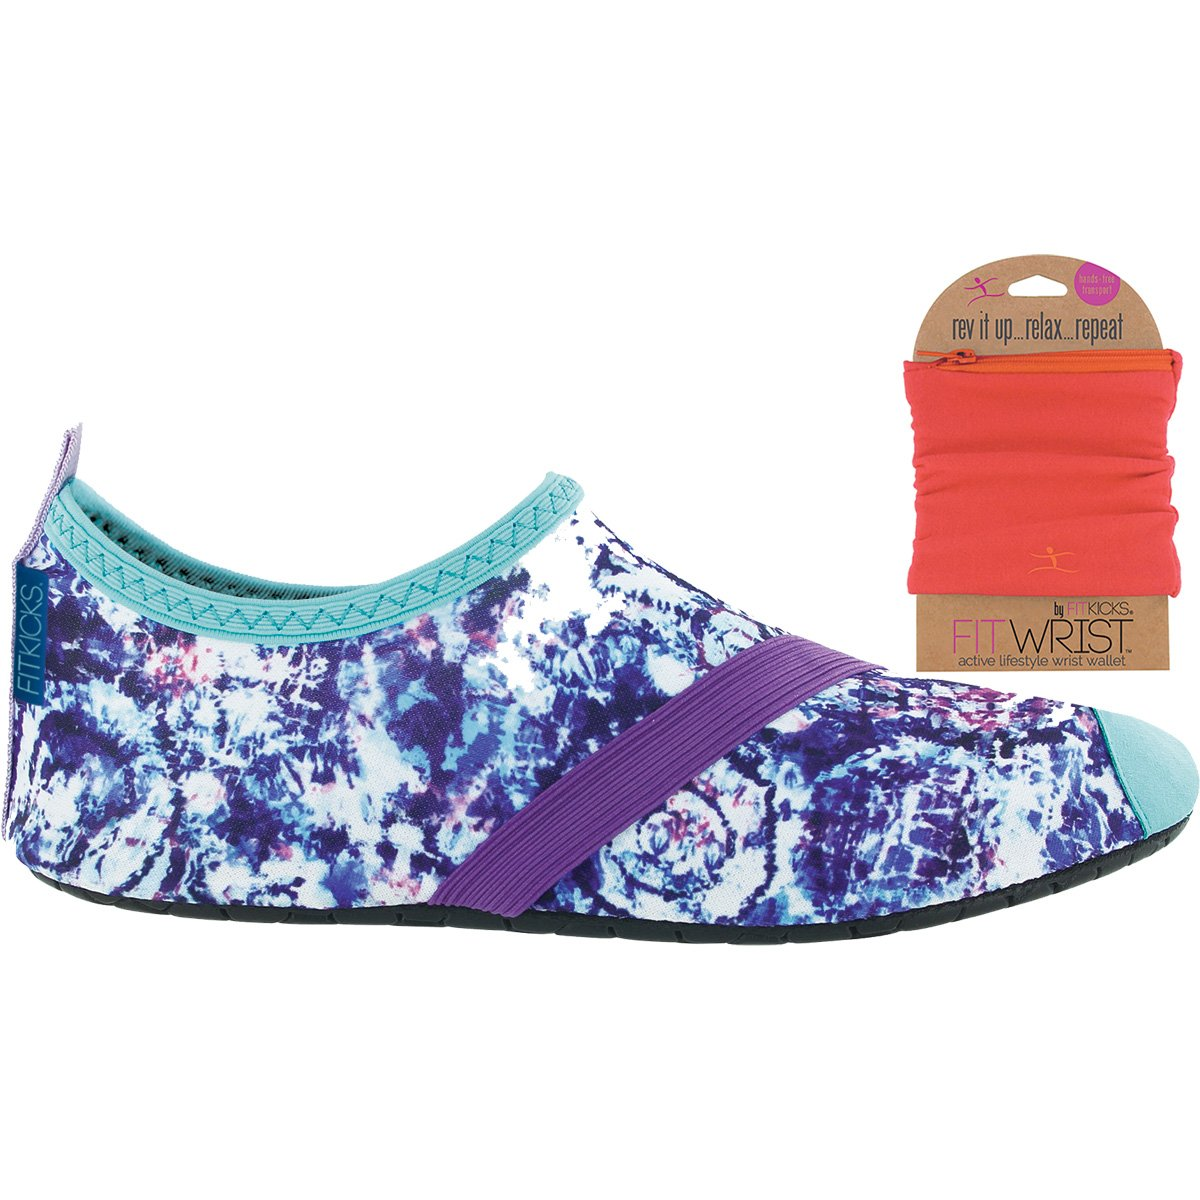 FITKICKS Womens Shoes with FITWRIST Wallet, Cloud Burst Shoe (X-Large (10-11), Fuchsia)